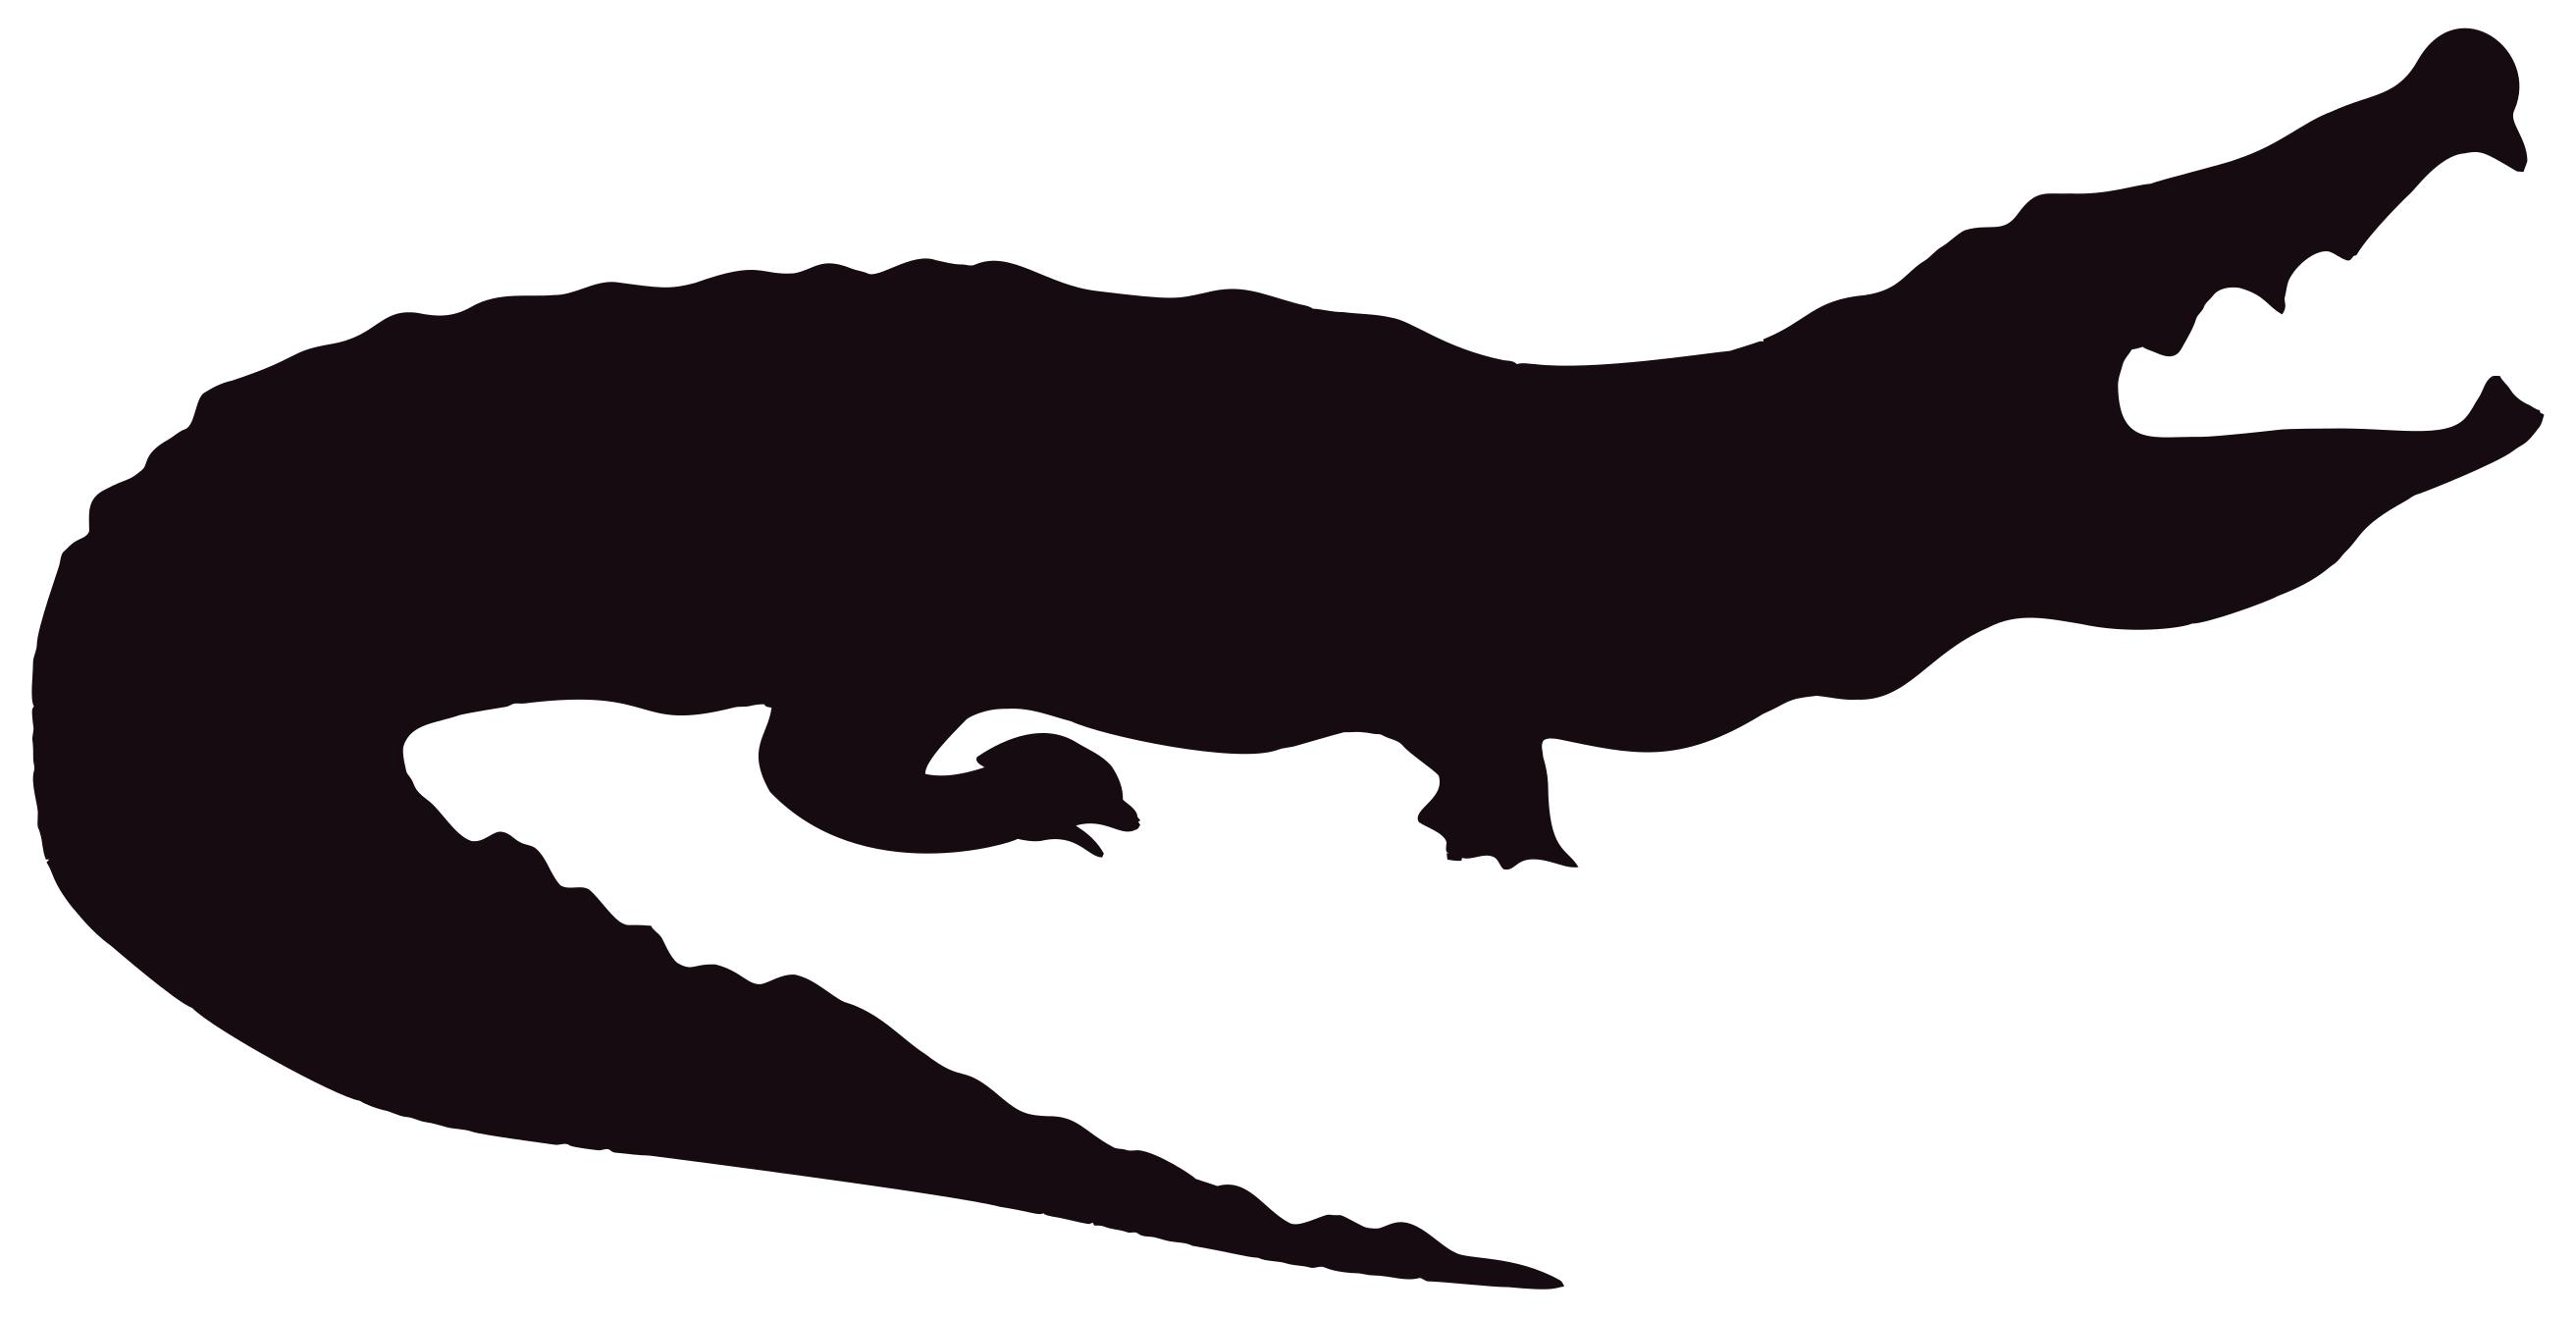 alligator silhouette clip art at getdrawings com free for personal rh getdrawings com free animated alligator clipart free alligator clipart black and white